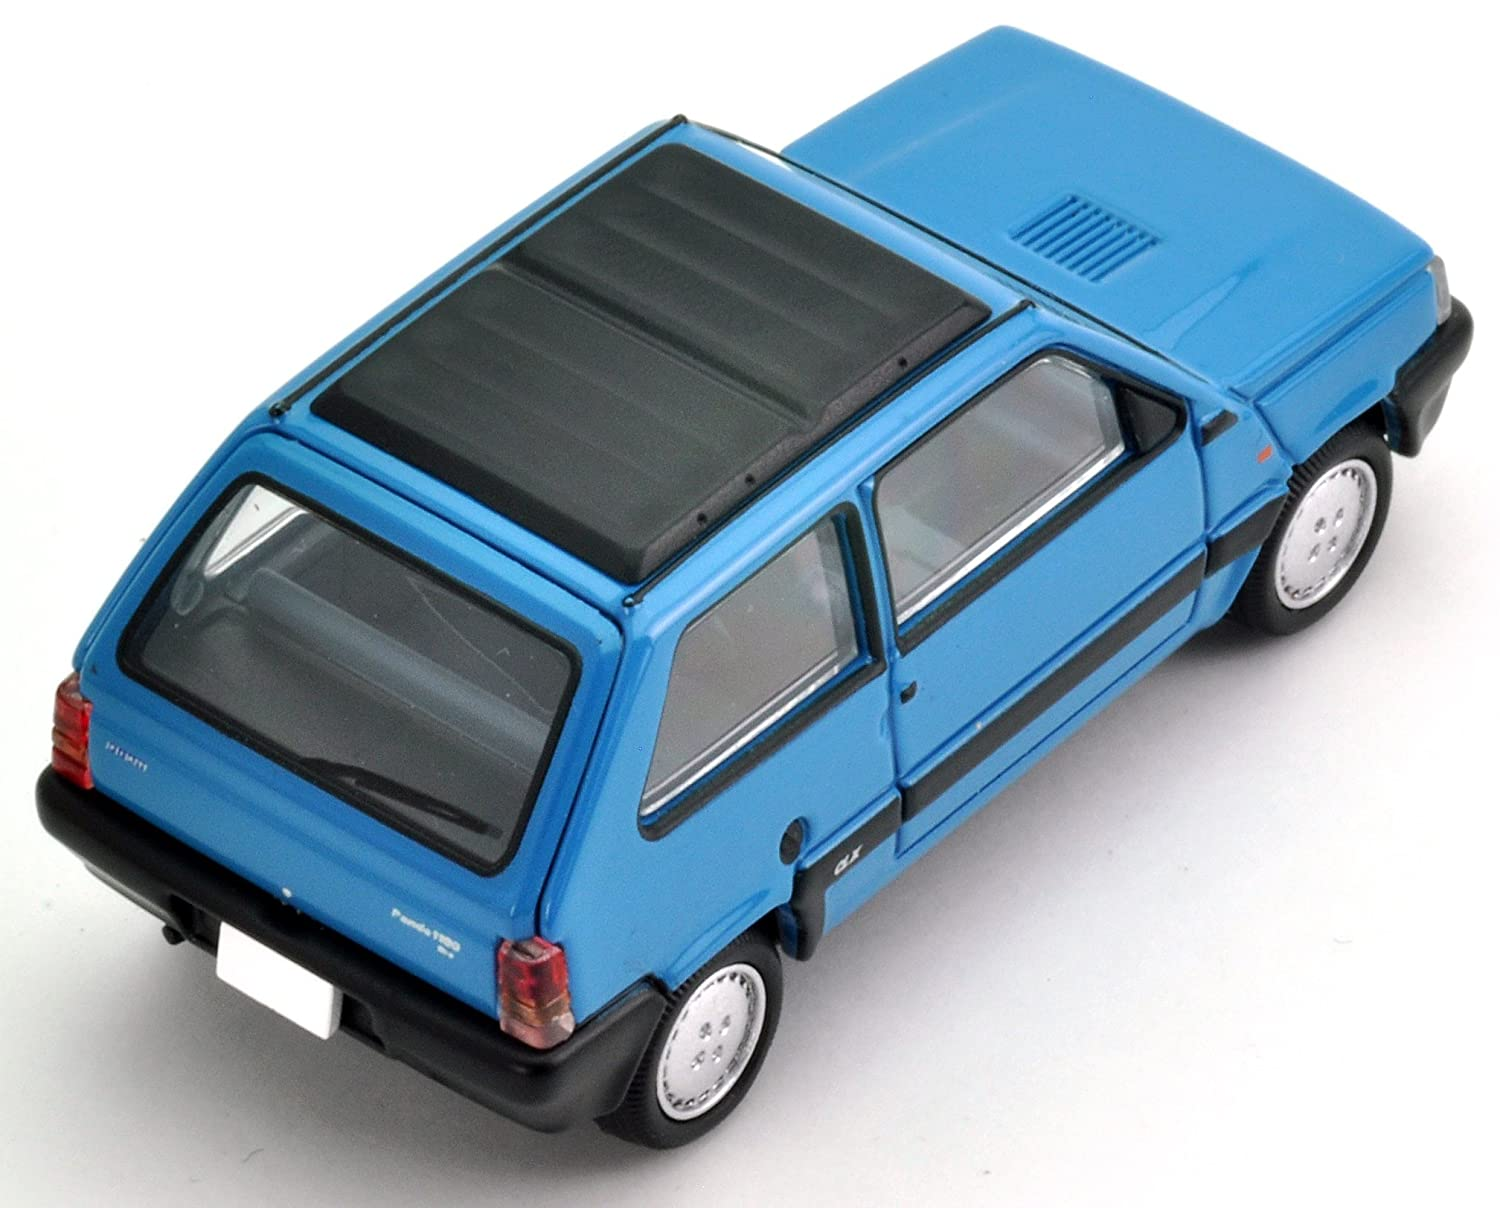 Amazon.com: Tomica Limited Vintage Neo 1/64 LV-N131a Fiat Panda CLX (blue): Toys & Games